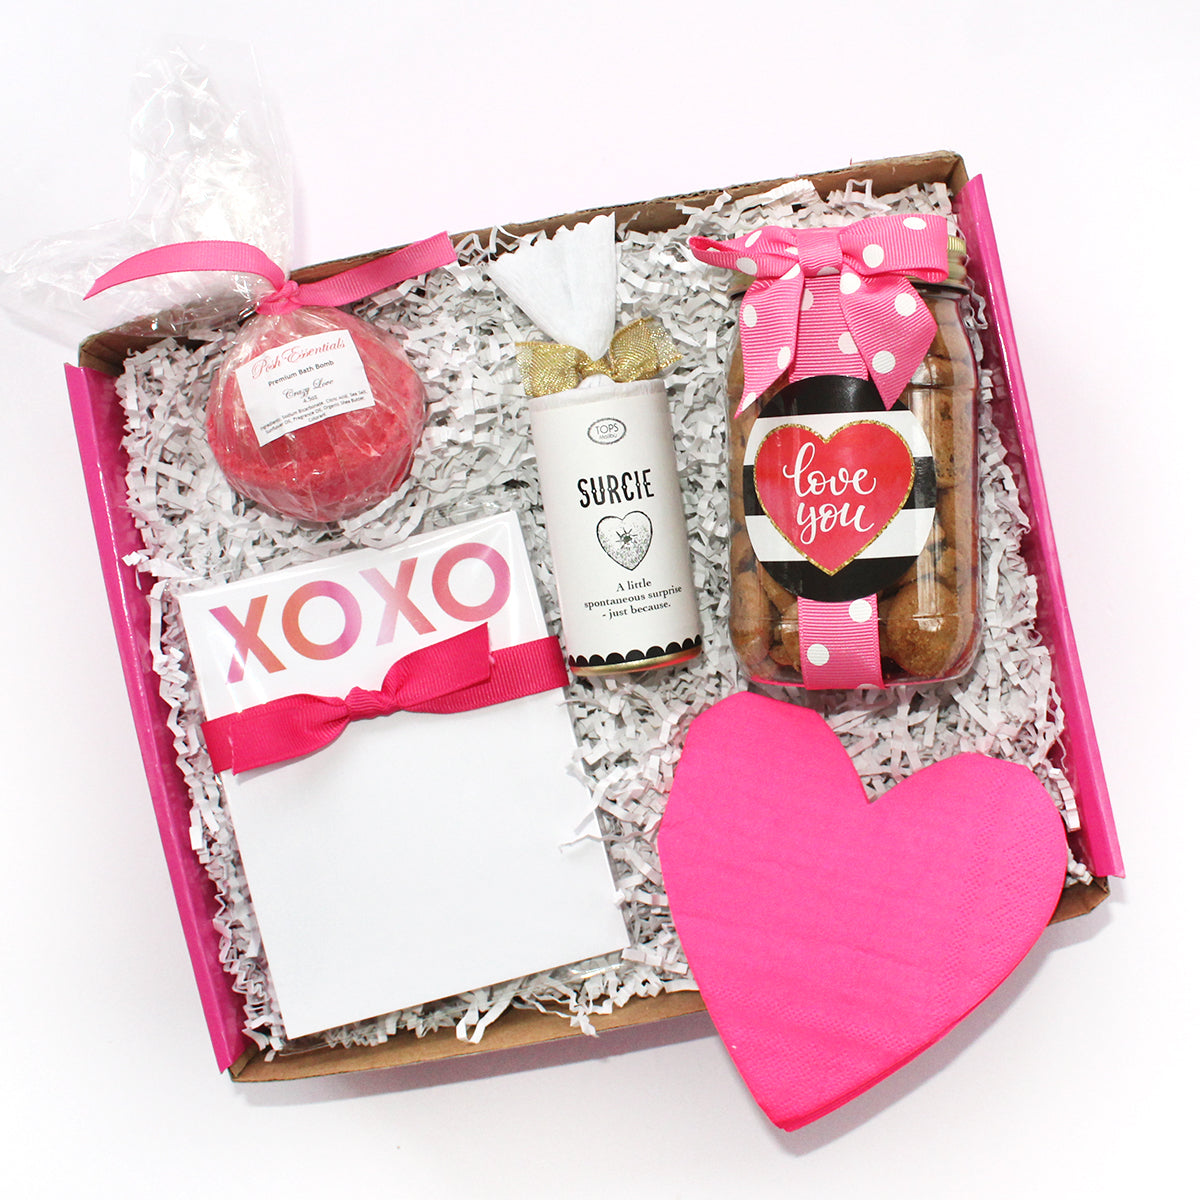 xoxo gift box for the love of your life which includes heart shaped napkins, chocolate chip cookies, surcie, xoxo notepad, bath bomb